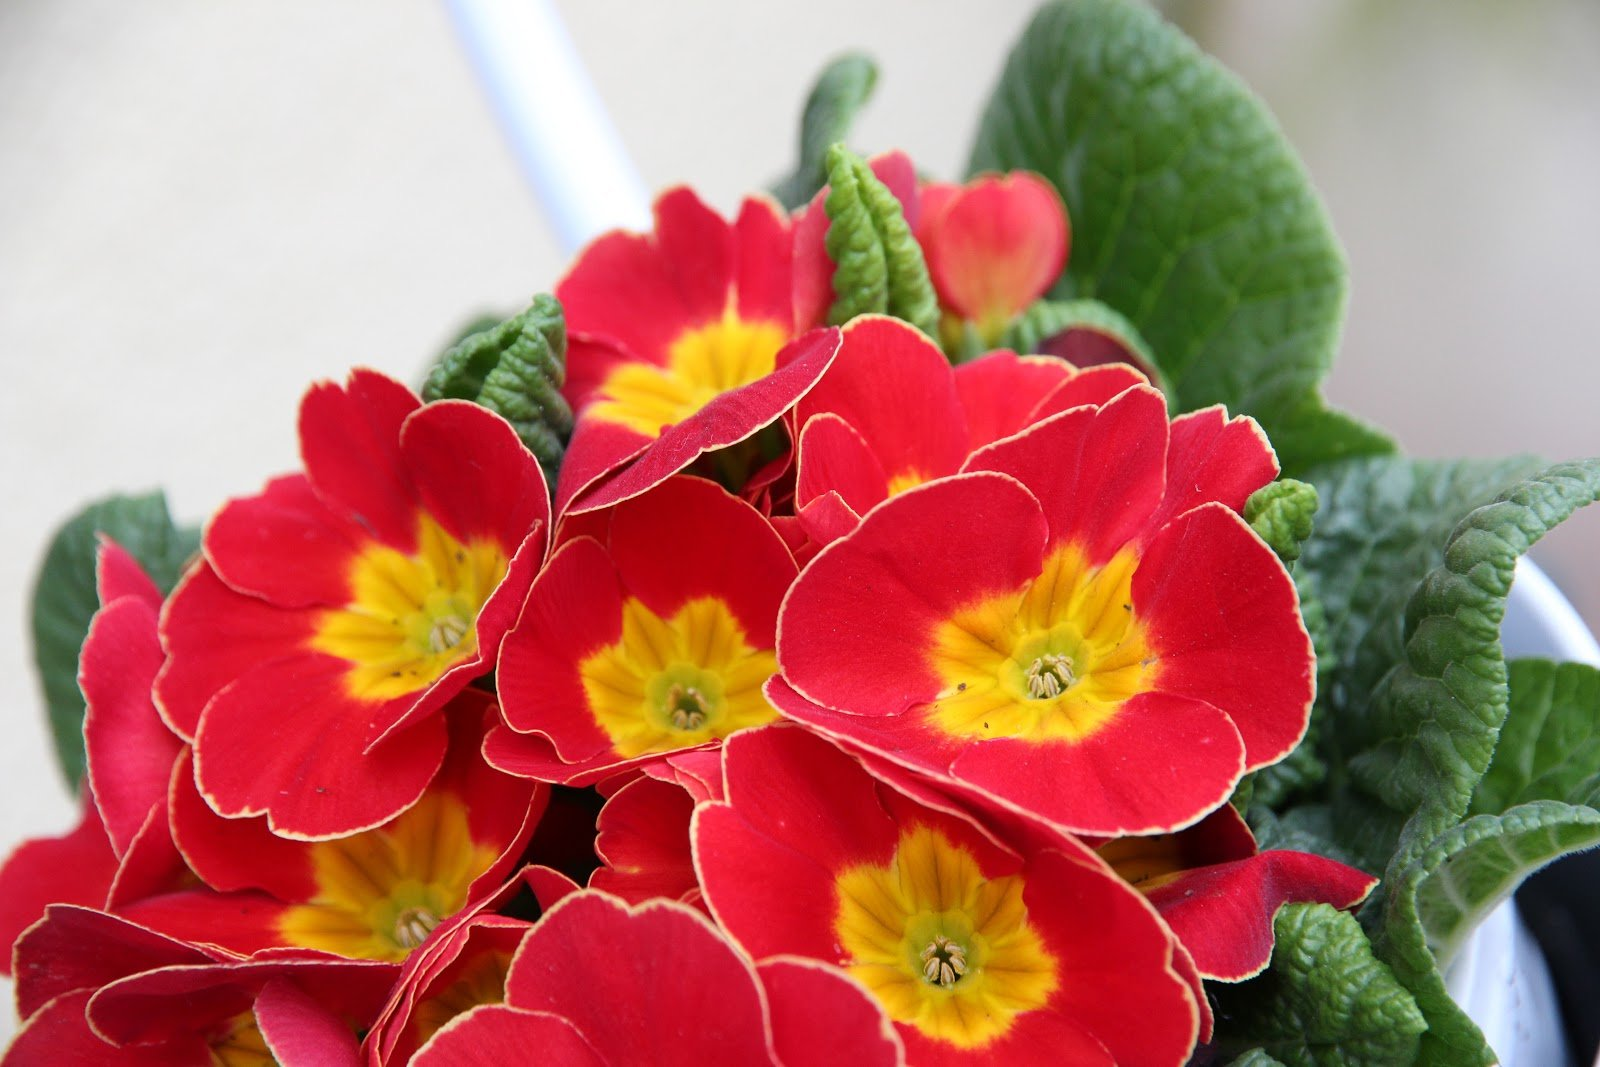 Red and yellow are just a few of the many colors that primroses come from